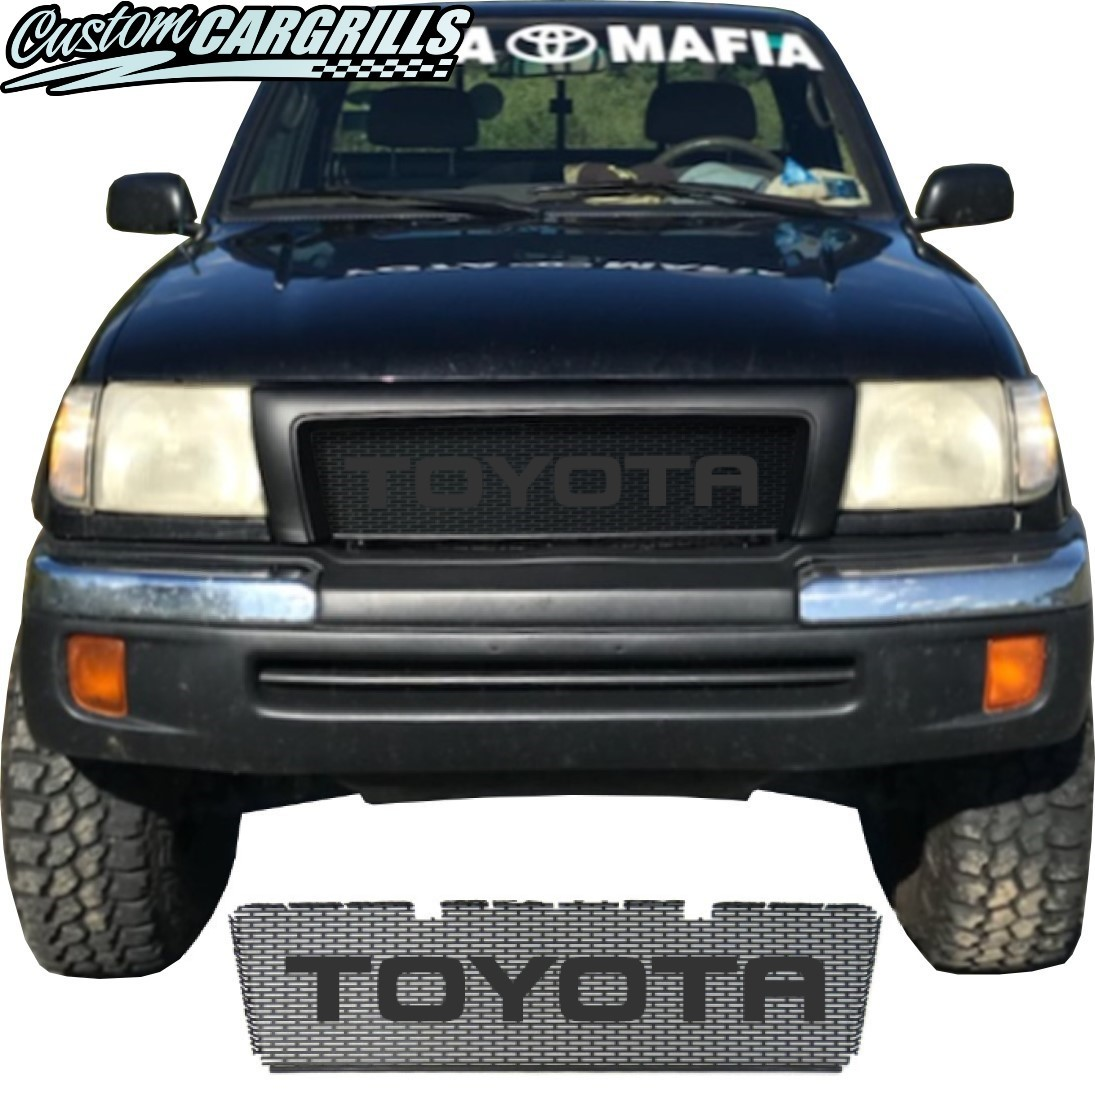 1998-2000 Toyota Tacoma Grill Mesh With Rounded Letters